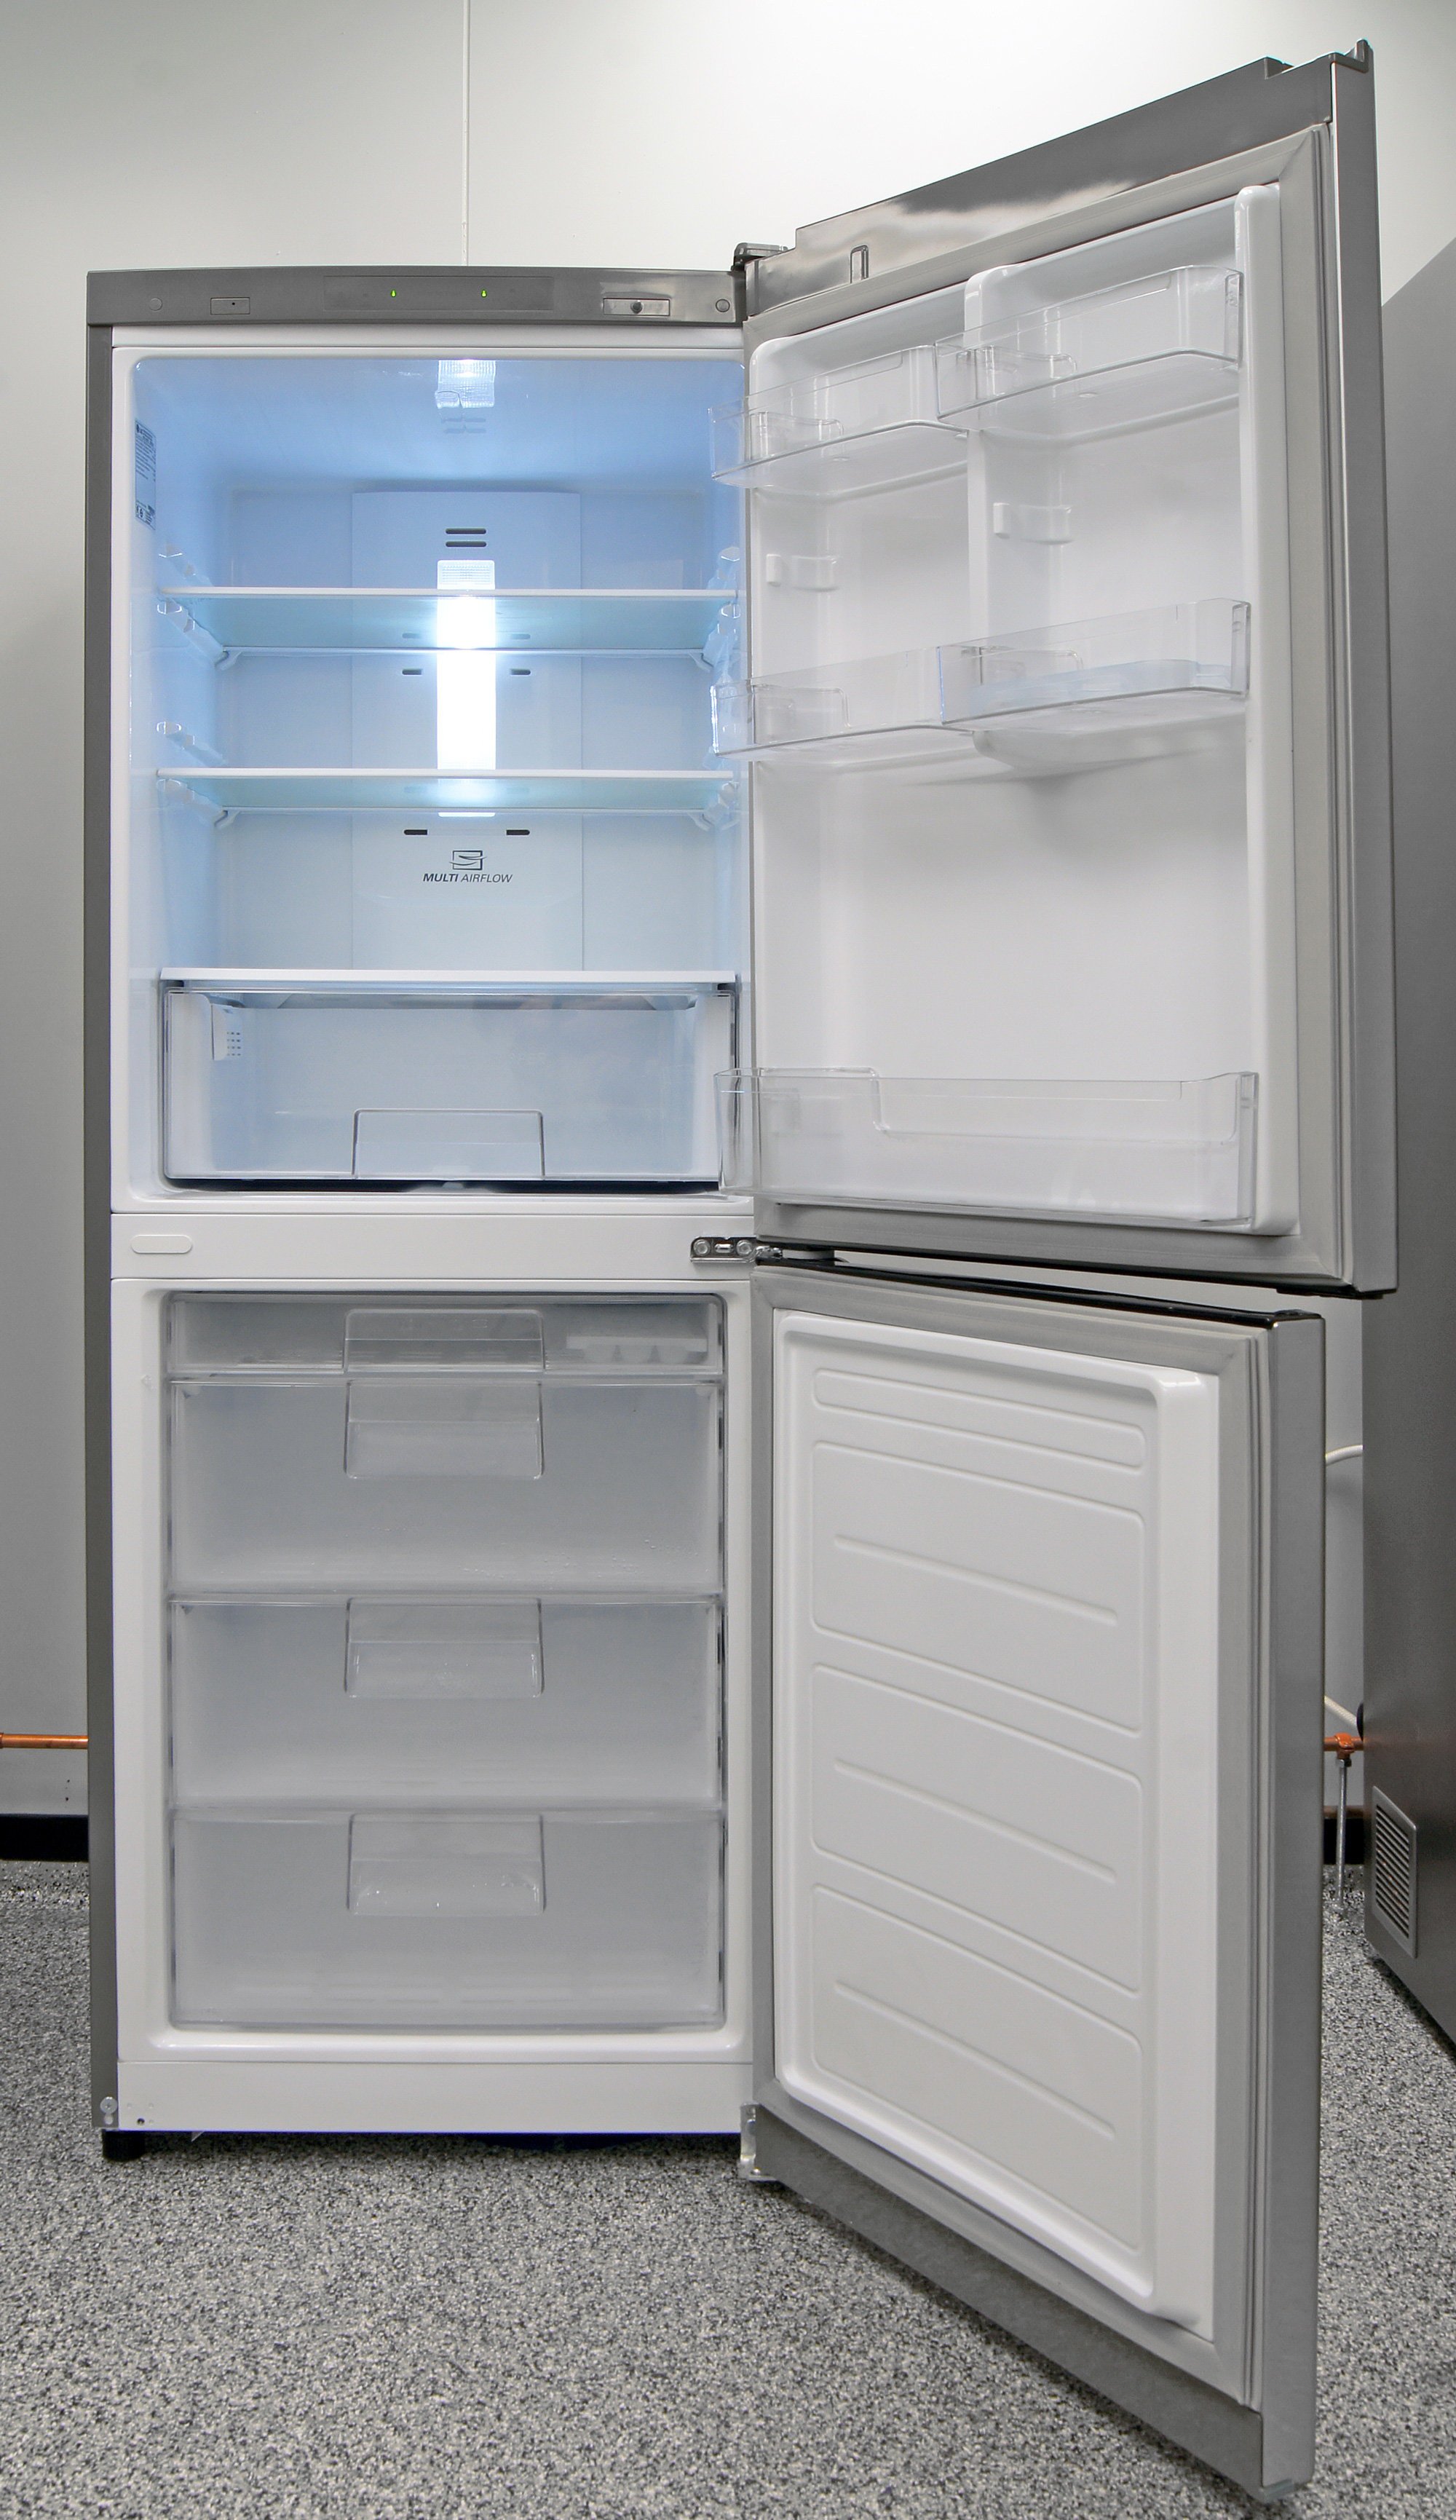 Both the fridge and freezer are effectively cooled, making the LG LBN10551PV a great all-around unit for your apartment's stylish kitchen.